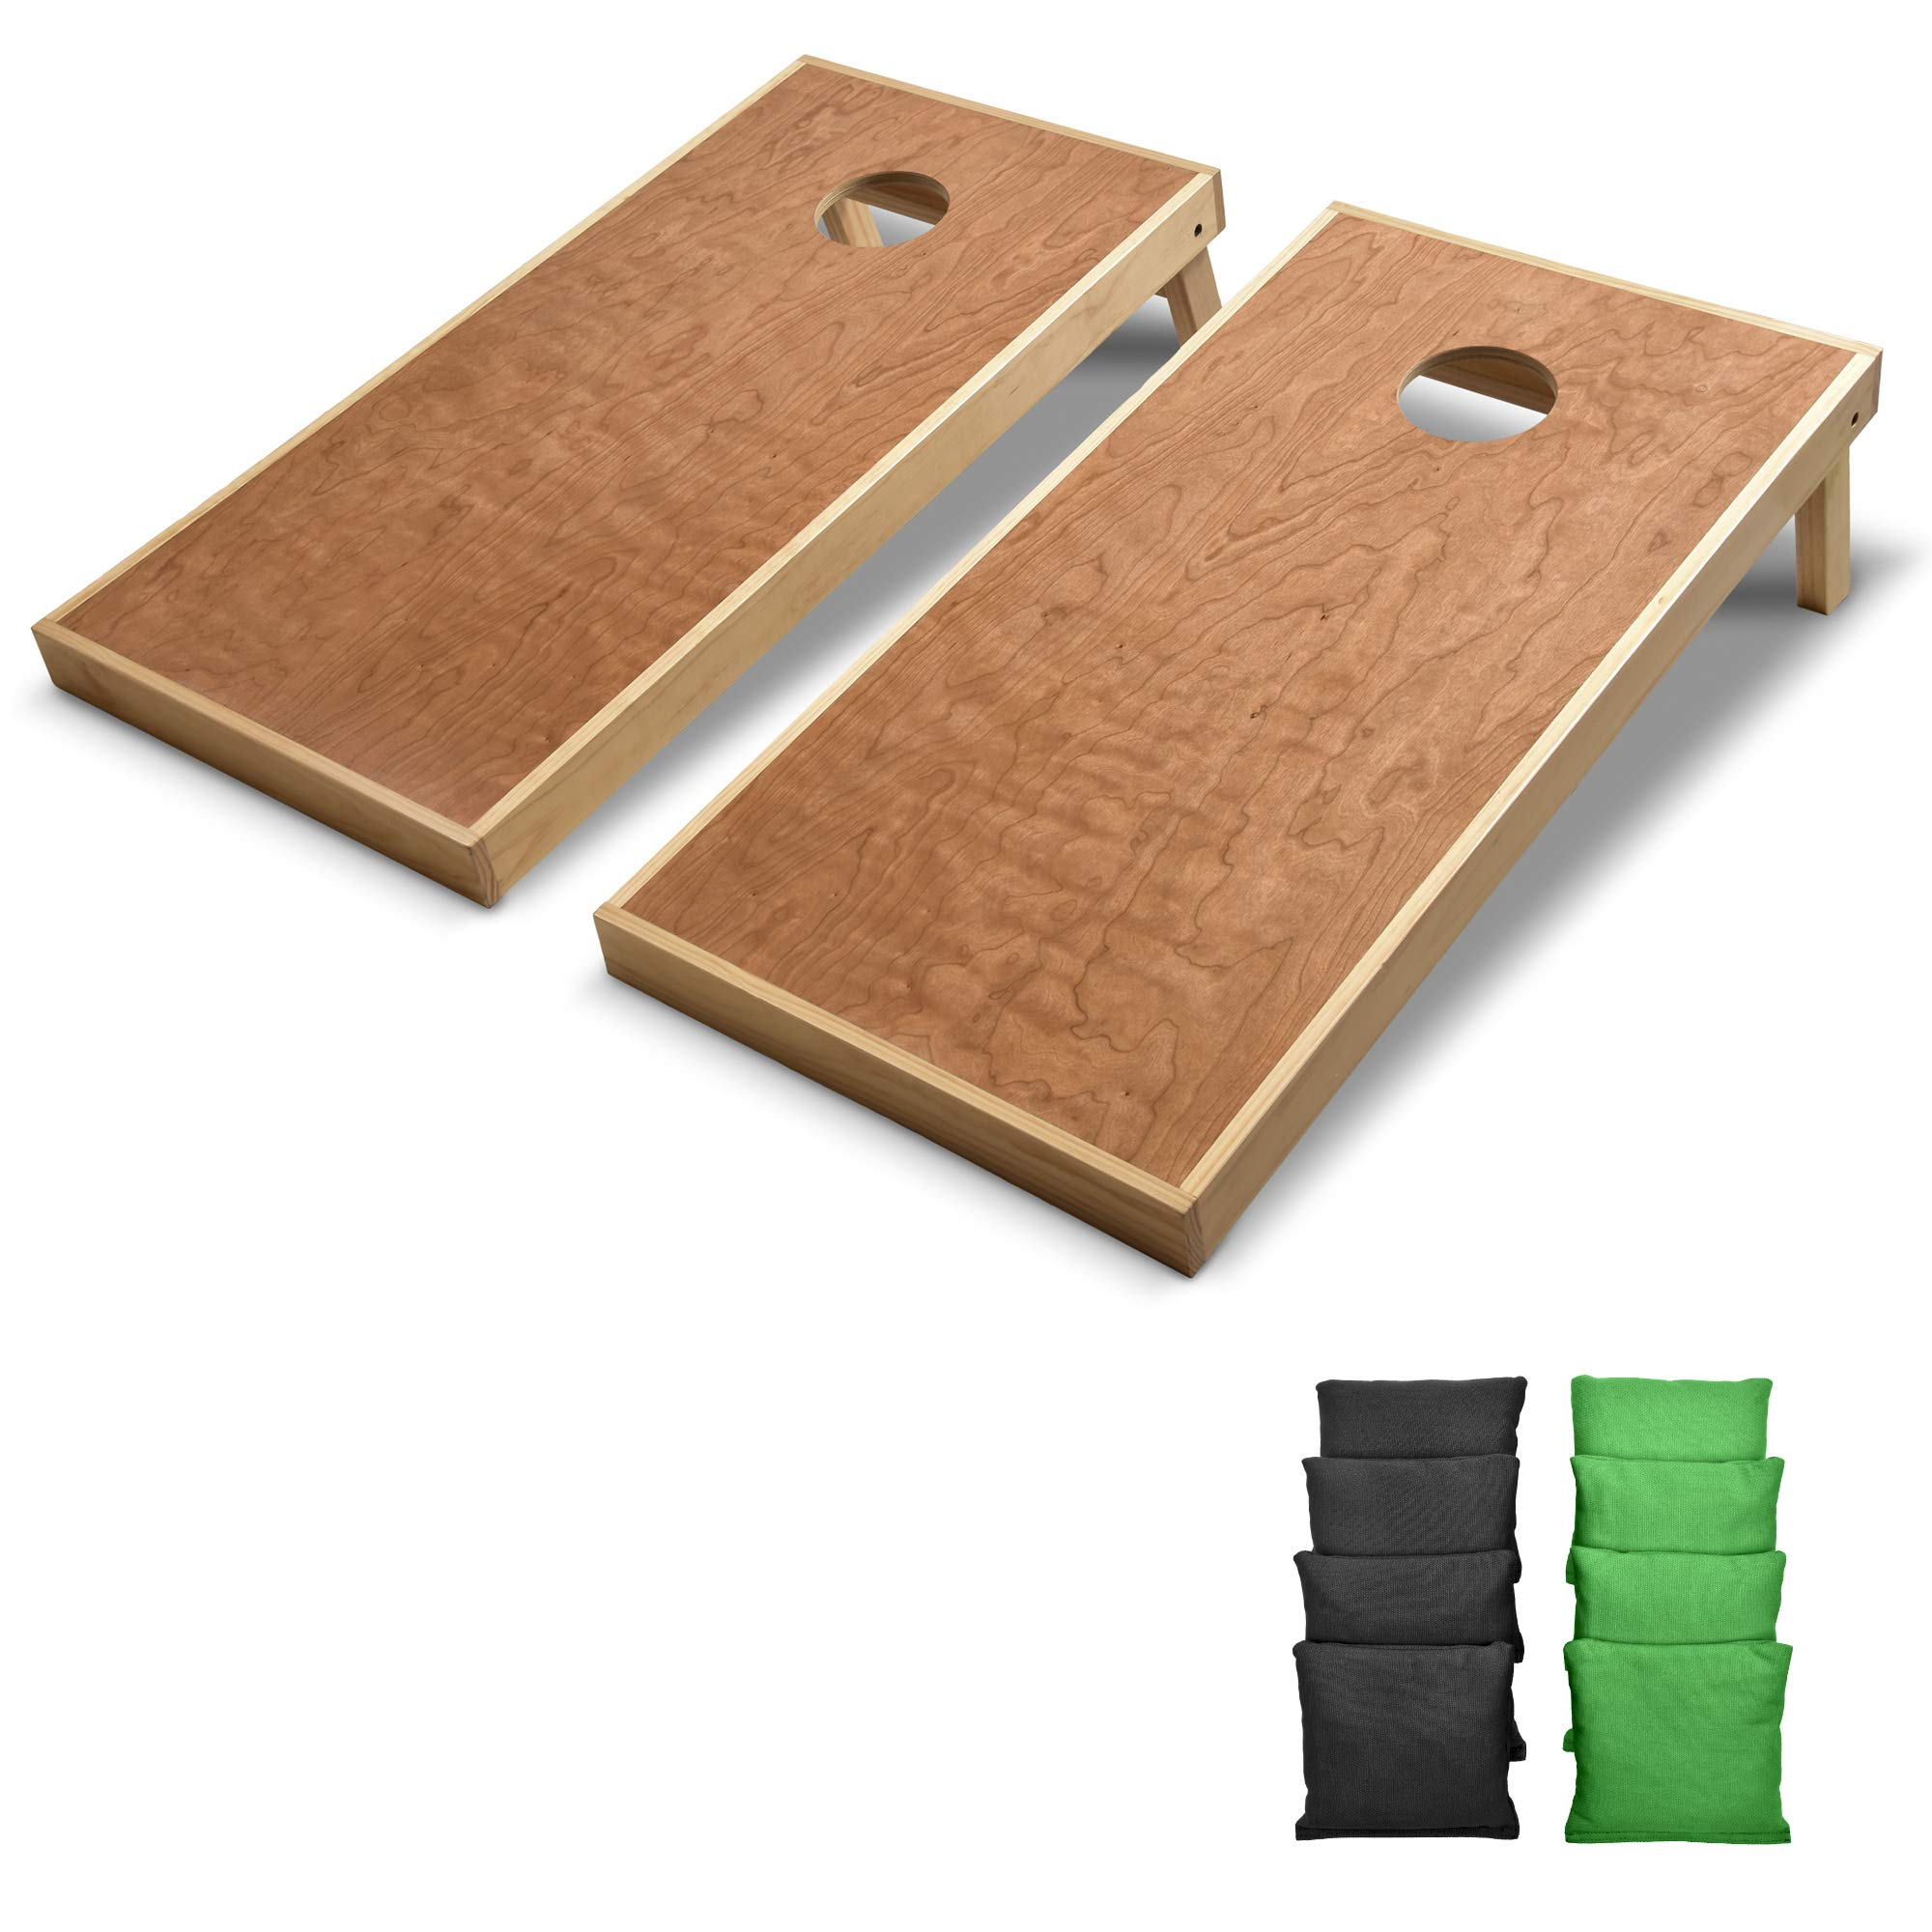 GoSports 4' x 2' Commercial Grade Cornhole Boards Set | Includes Bean Bags (Choose Your Colors) Over 100 Color Combinations